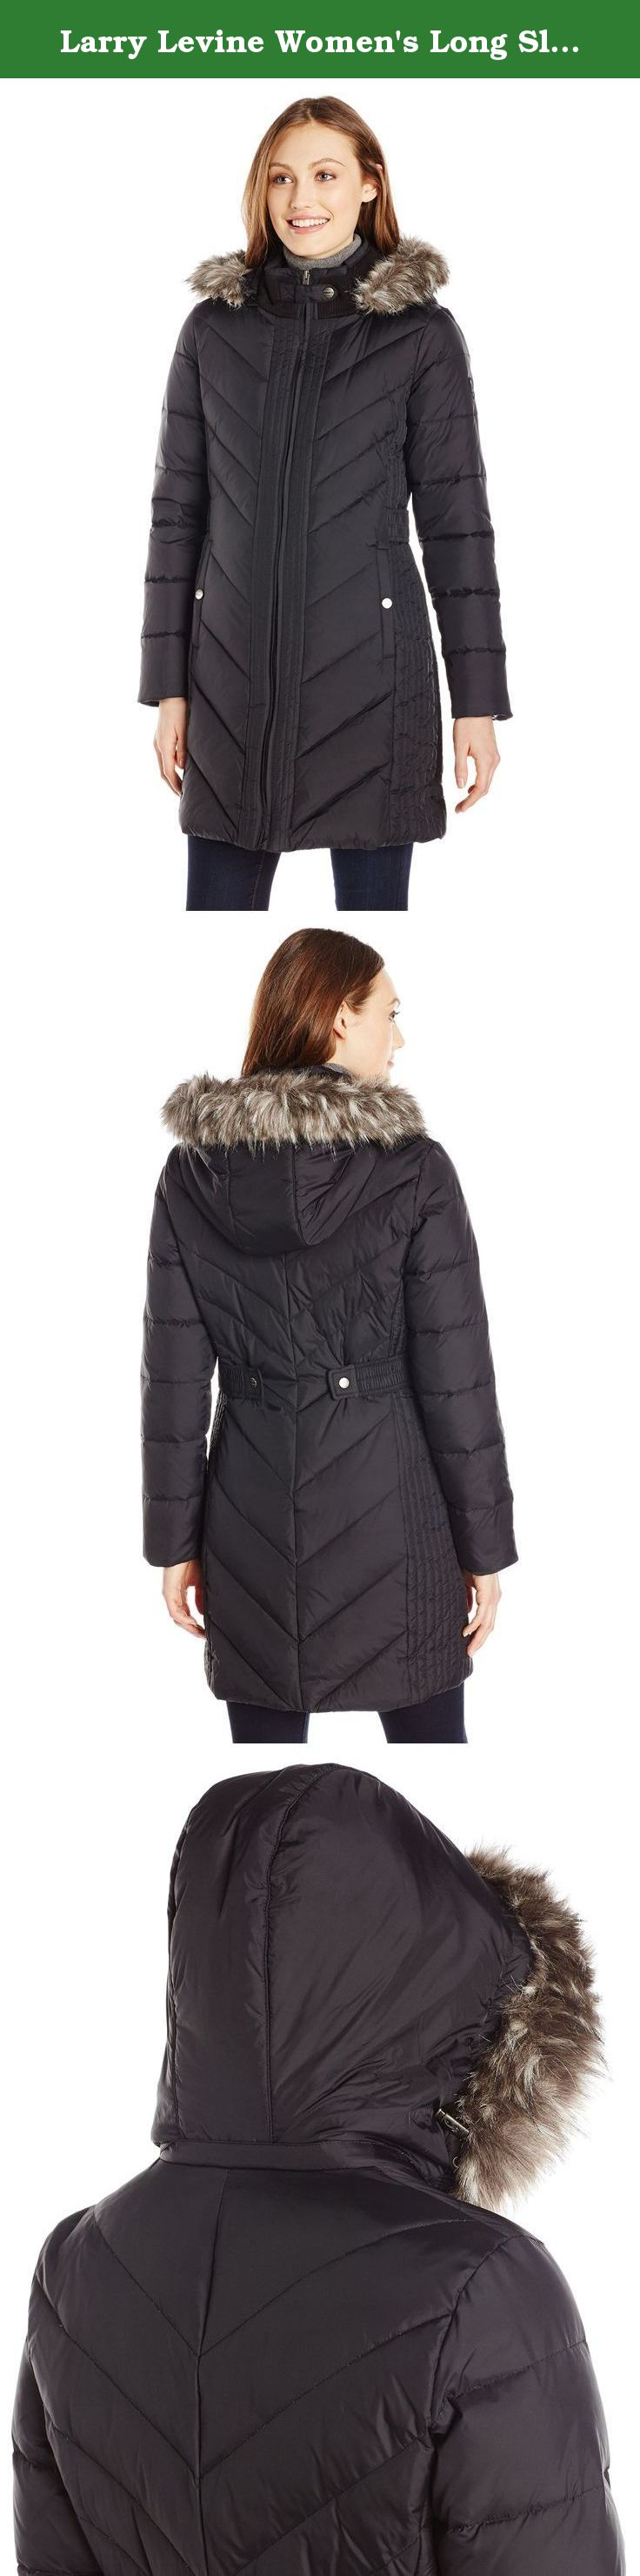 Larry Levine Women's Long Sleeve Down Coat with Side Tabs and Hood ...